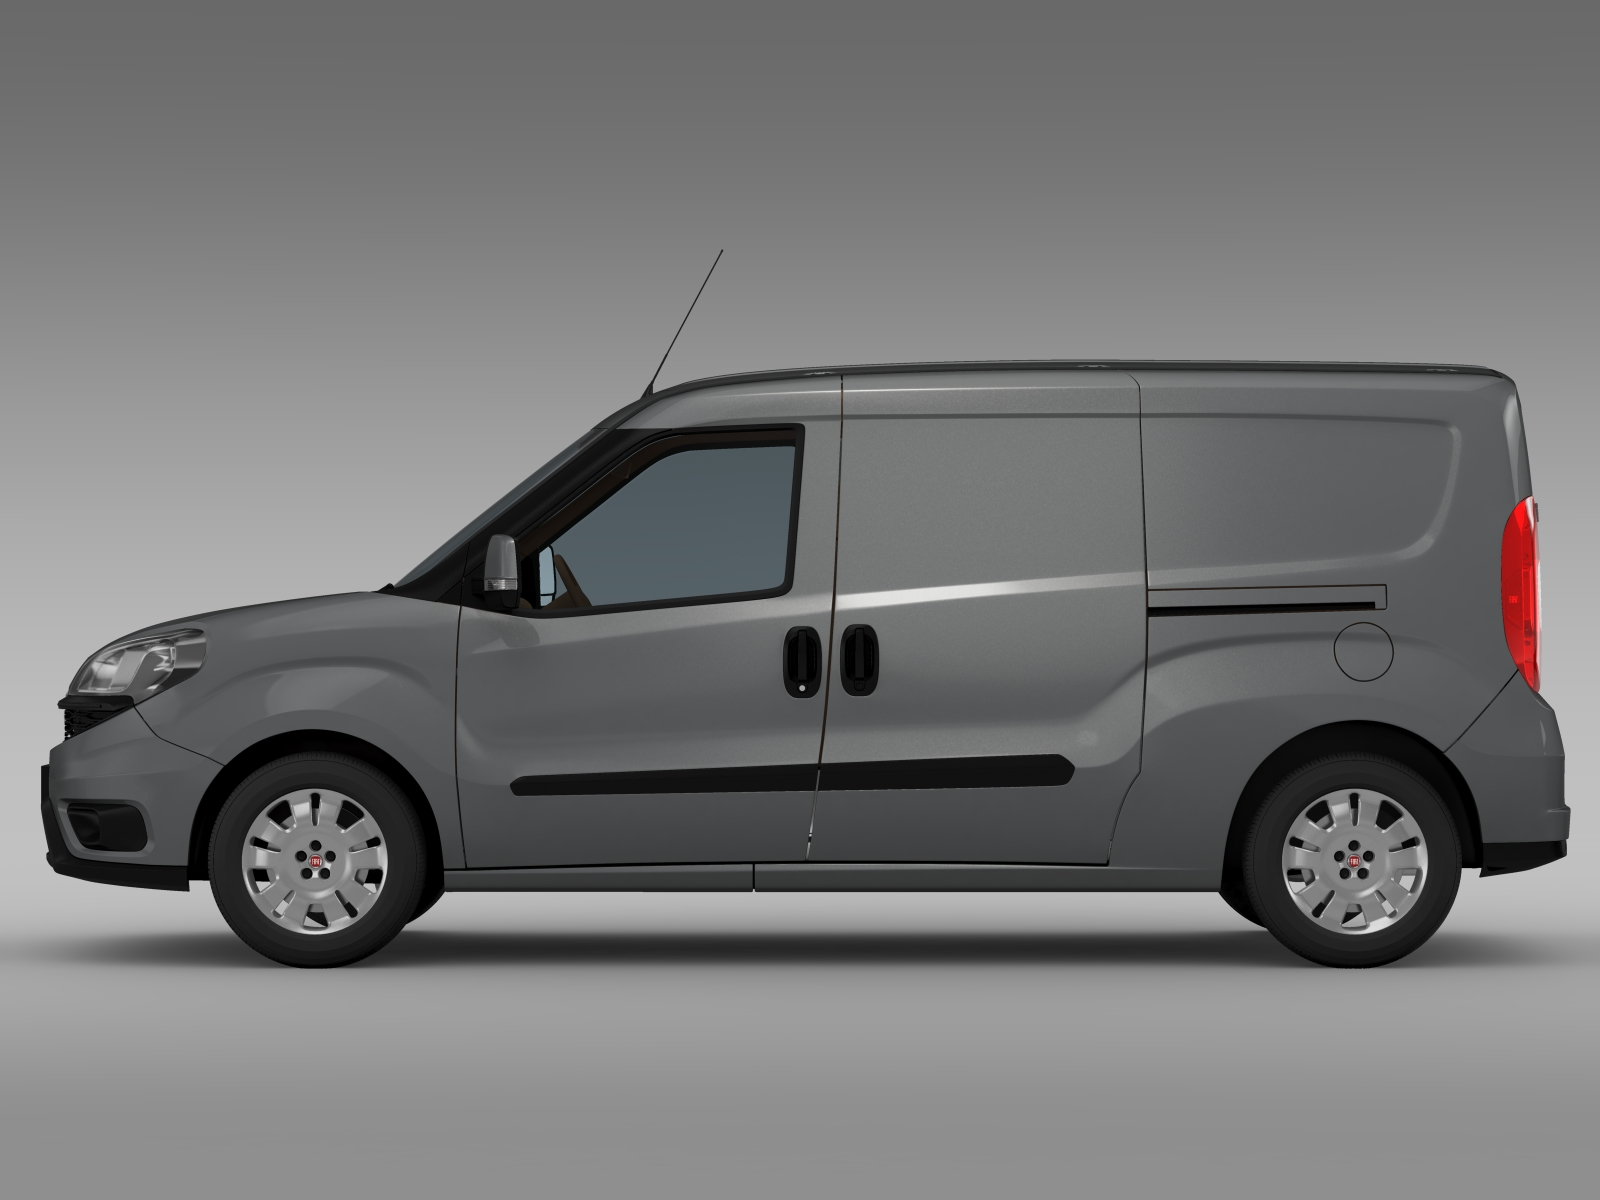 fiat doblo cargo maxi 263 2015 3d model buy fiat doblo cargo maxi 263 2015 3d model flatpyramid. Black Bedroom Furniture Sets. Home Design Ideas